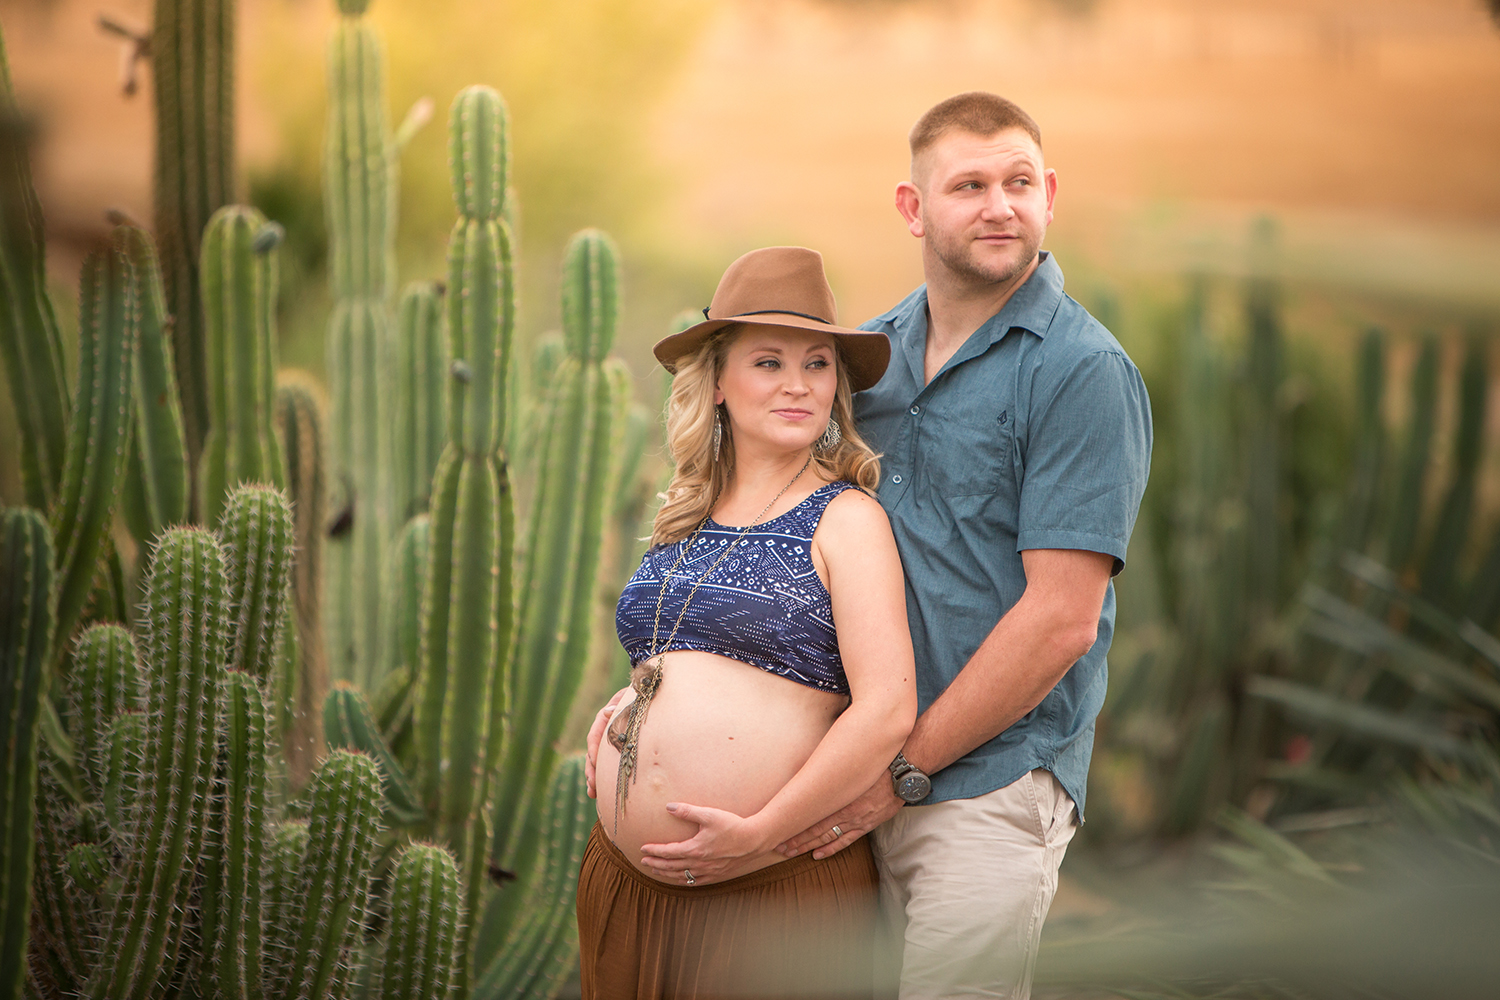 Dena_Rooney_Maternity_Portraits_011.jpg